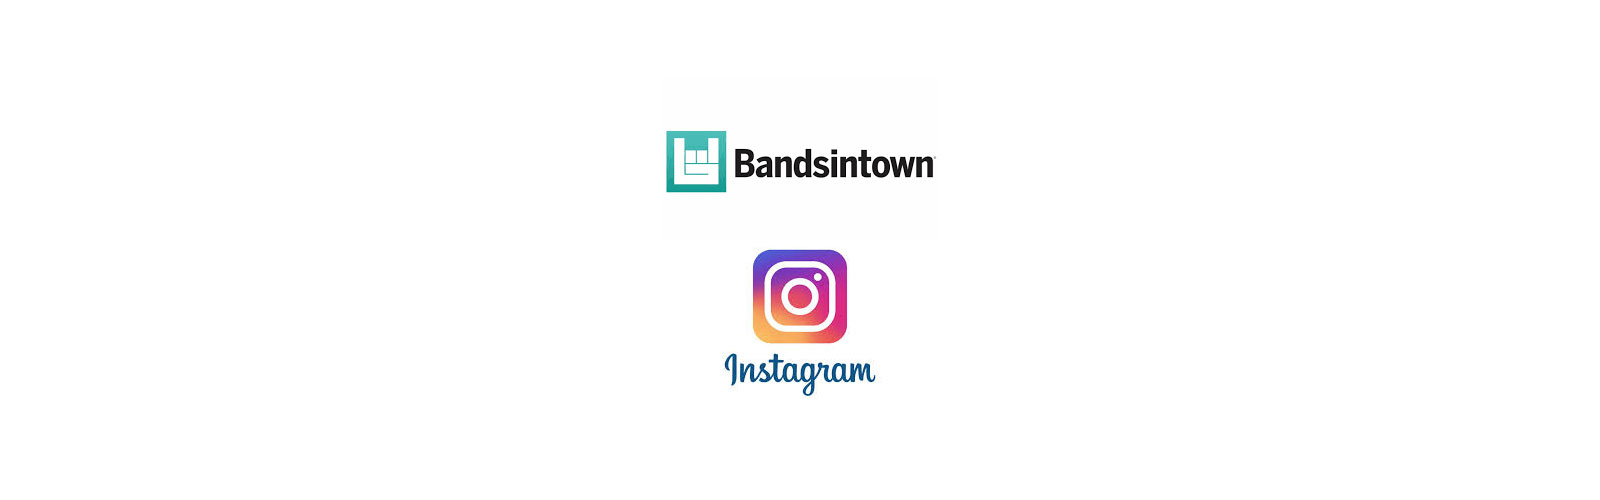 bandsintown-instagram